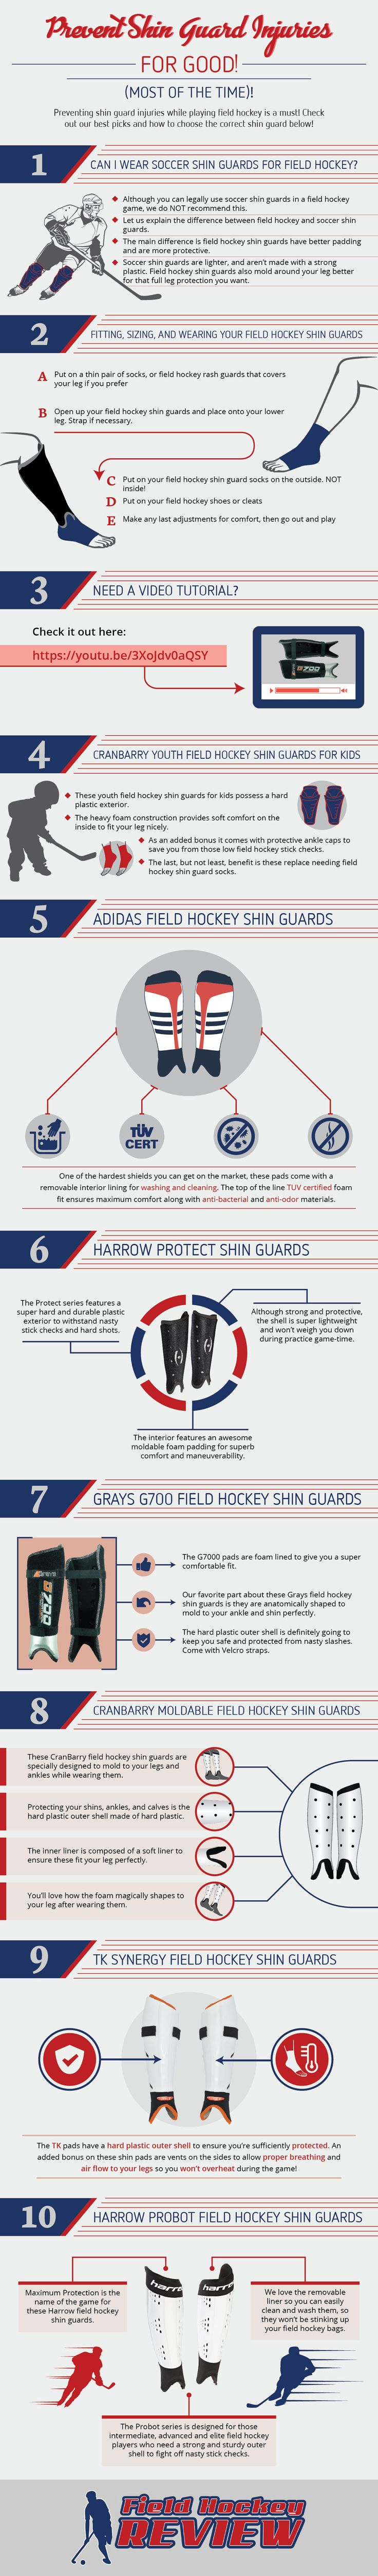 Prevent Shin Injuries For Good! (Most Of The Time)! #Infographic #Sports #Hockey